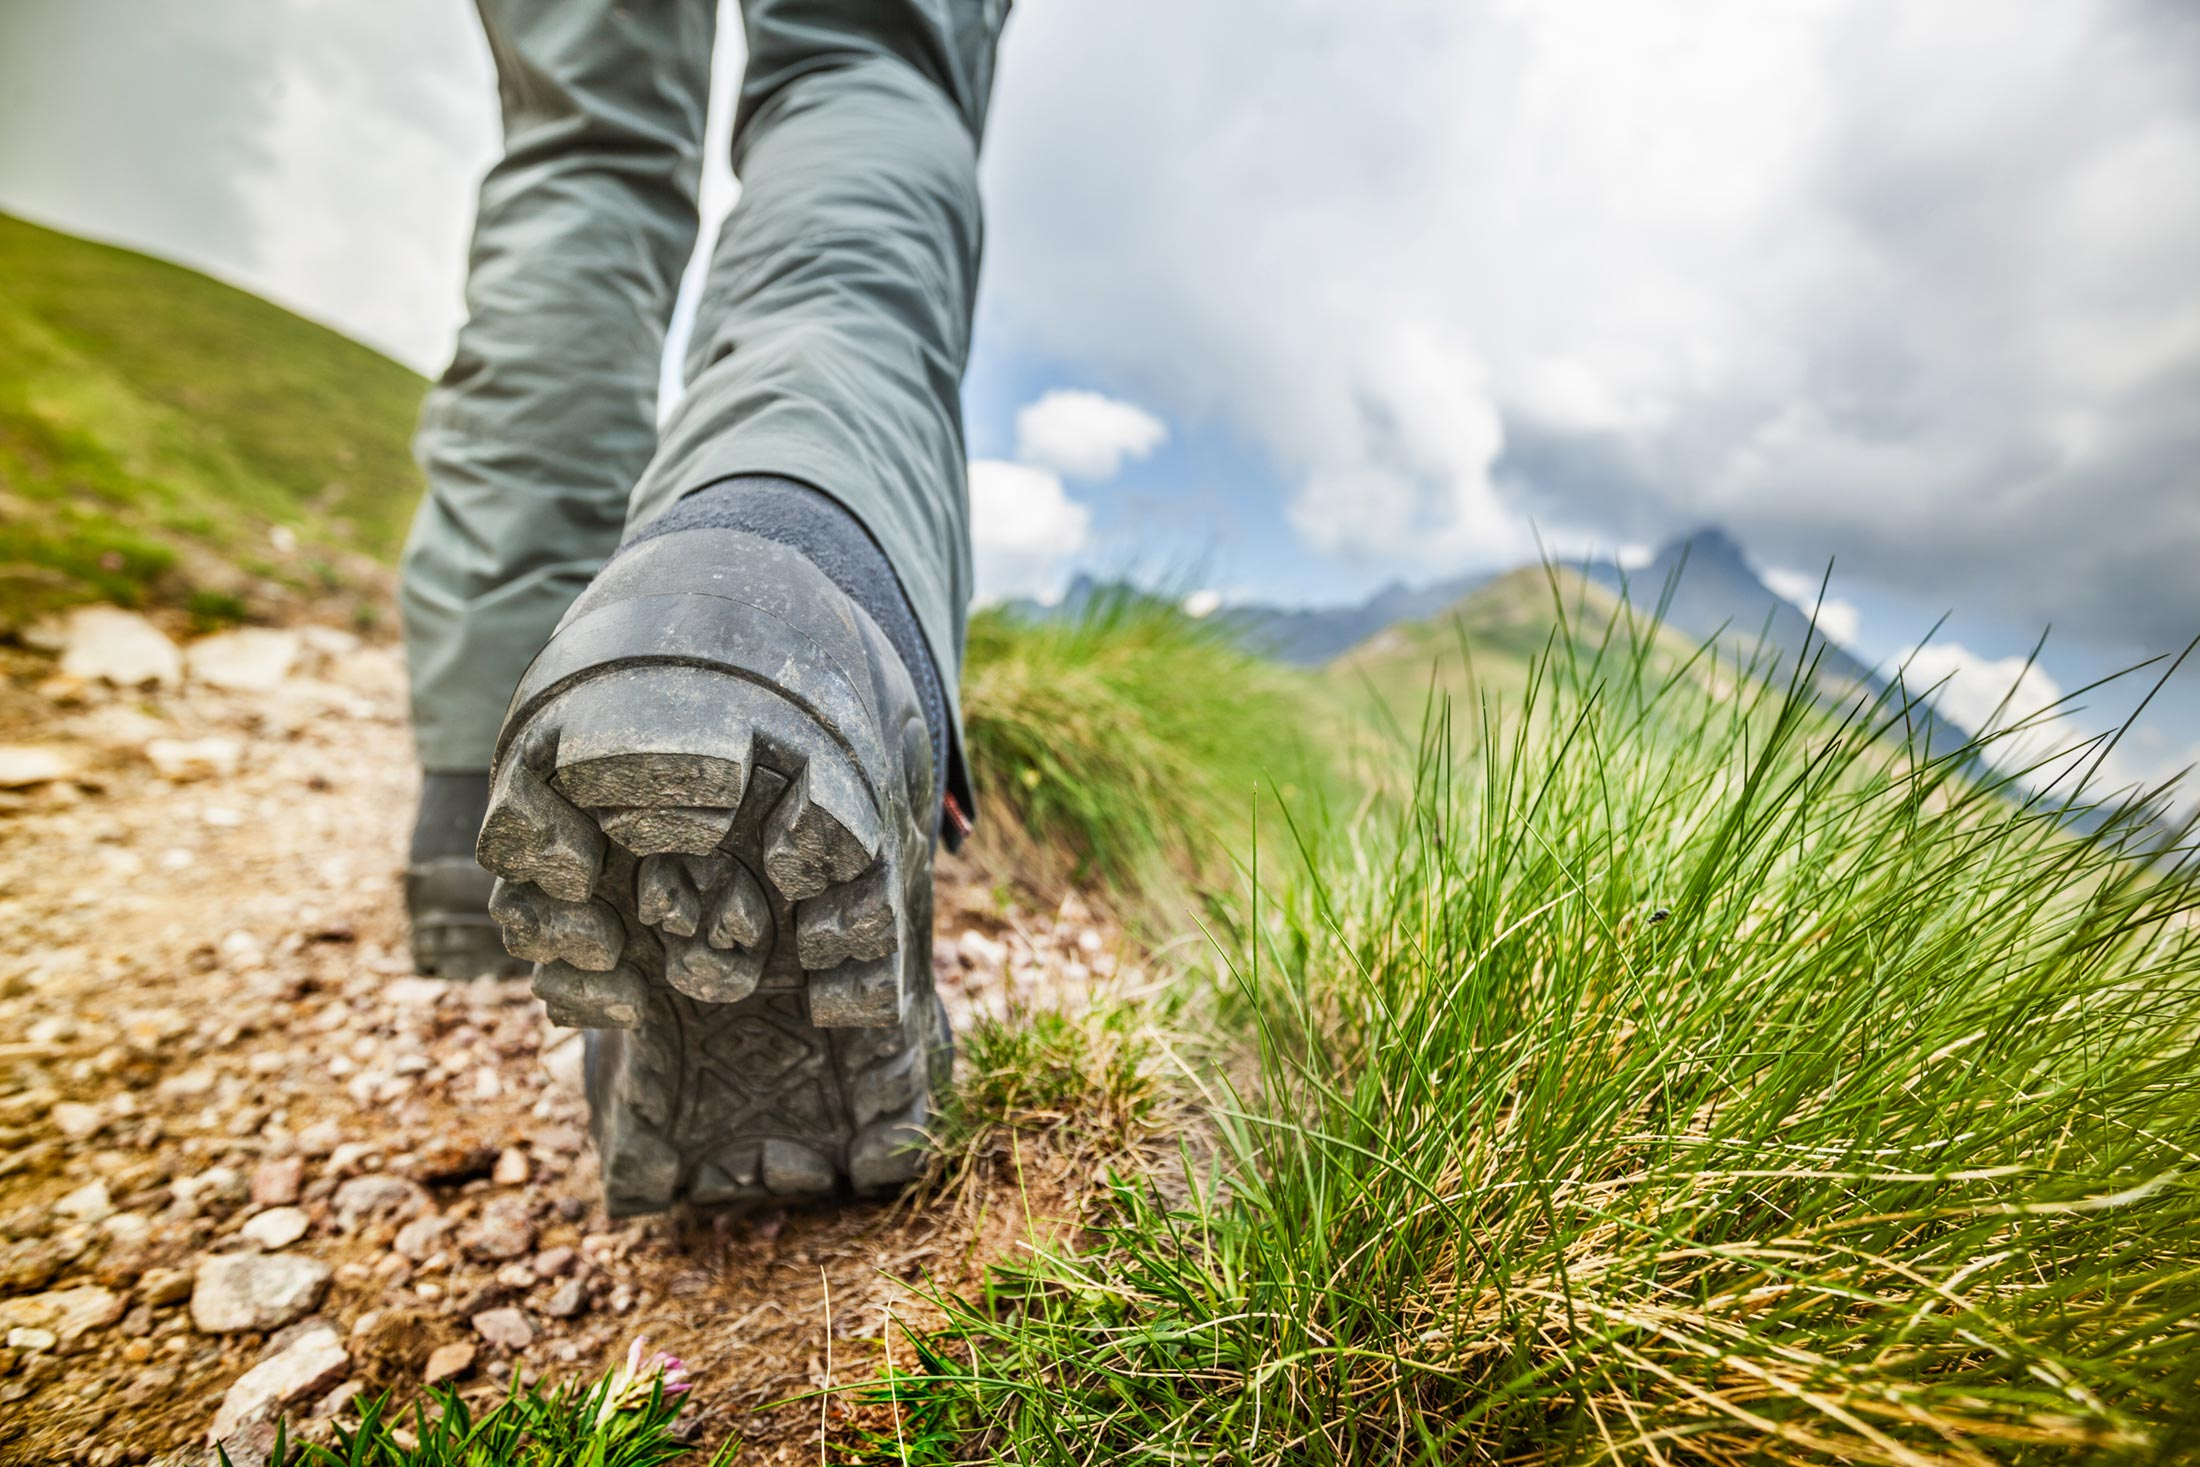 What does a carbon footprint actually mean